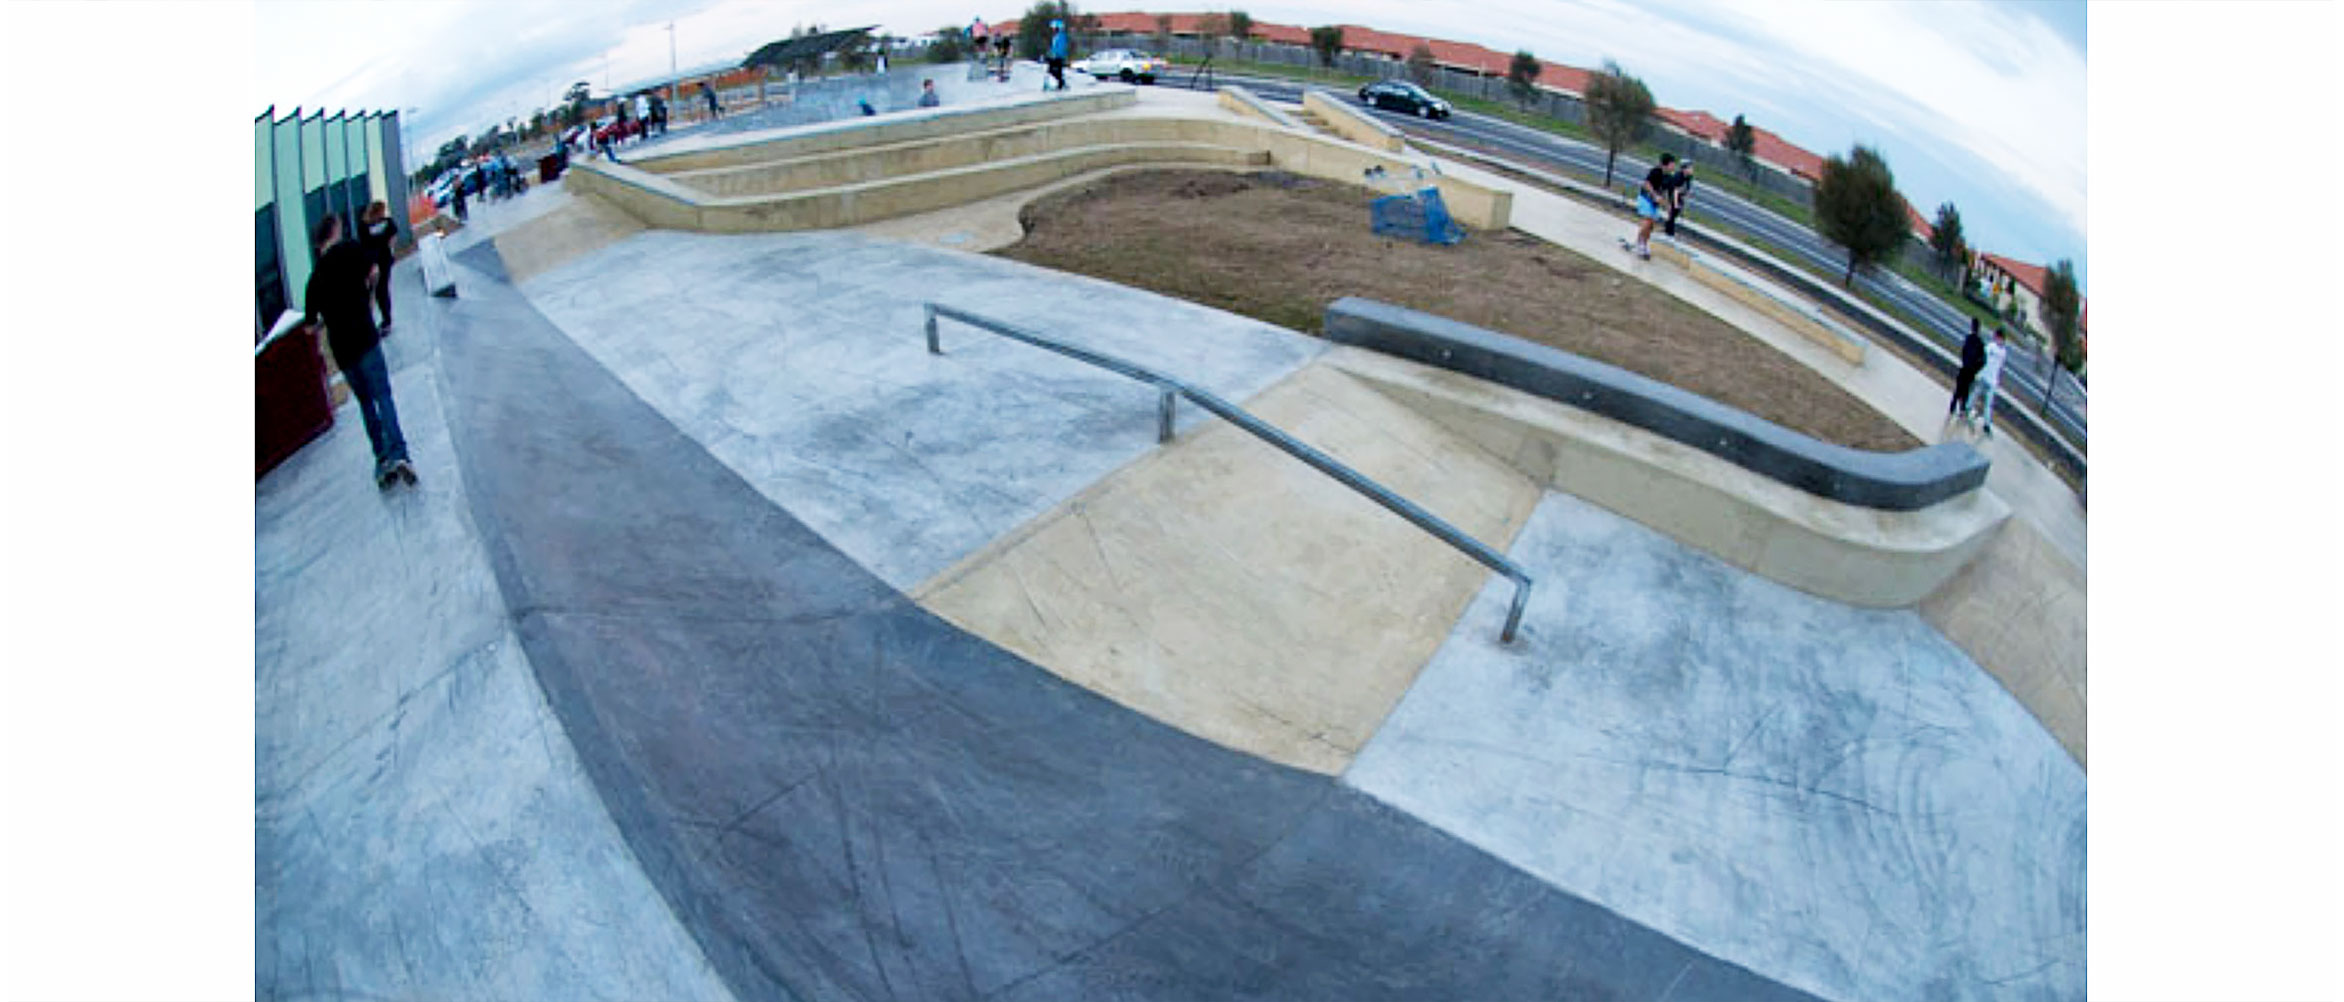 Taylors Hill skate park, street section, Concrete Skateparks